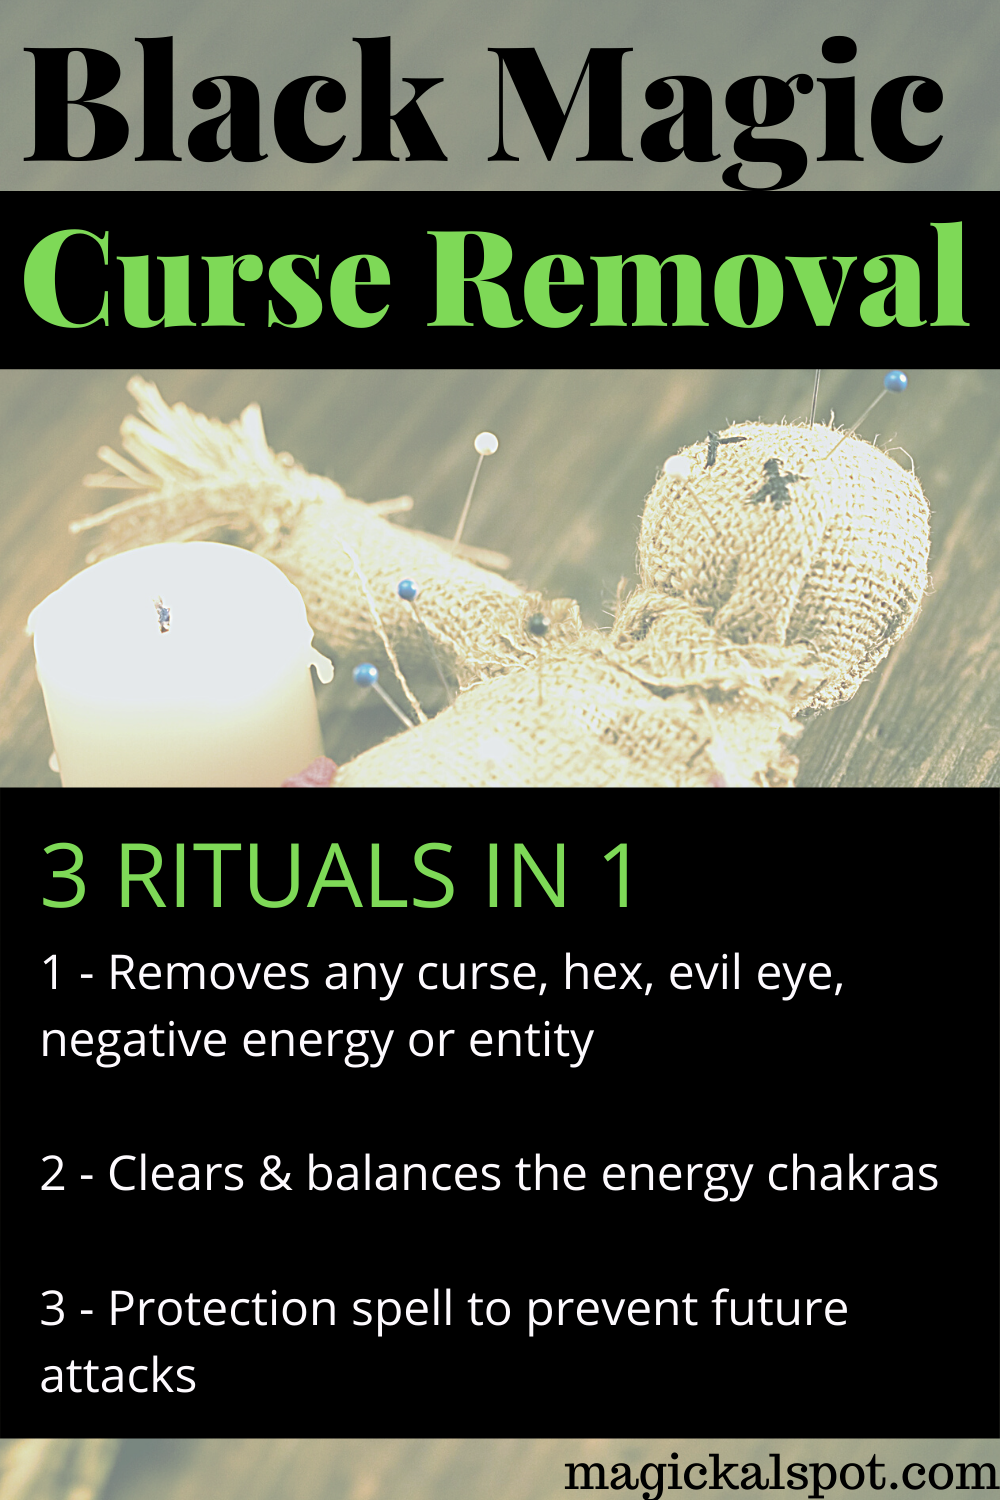 Black Magic Curse Removal Spell Casting by Tina Caro